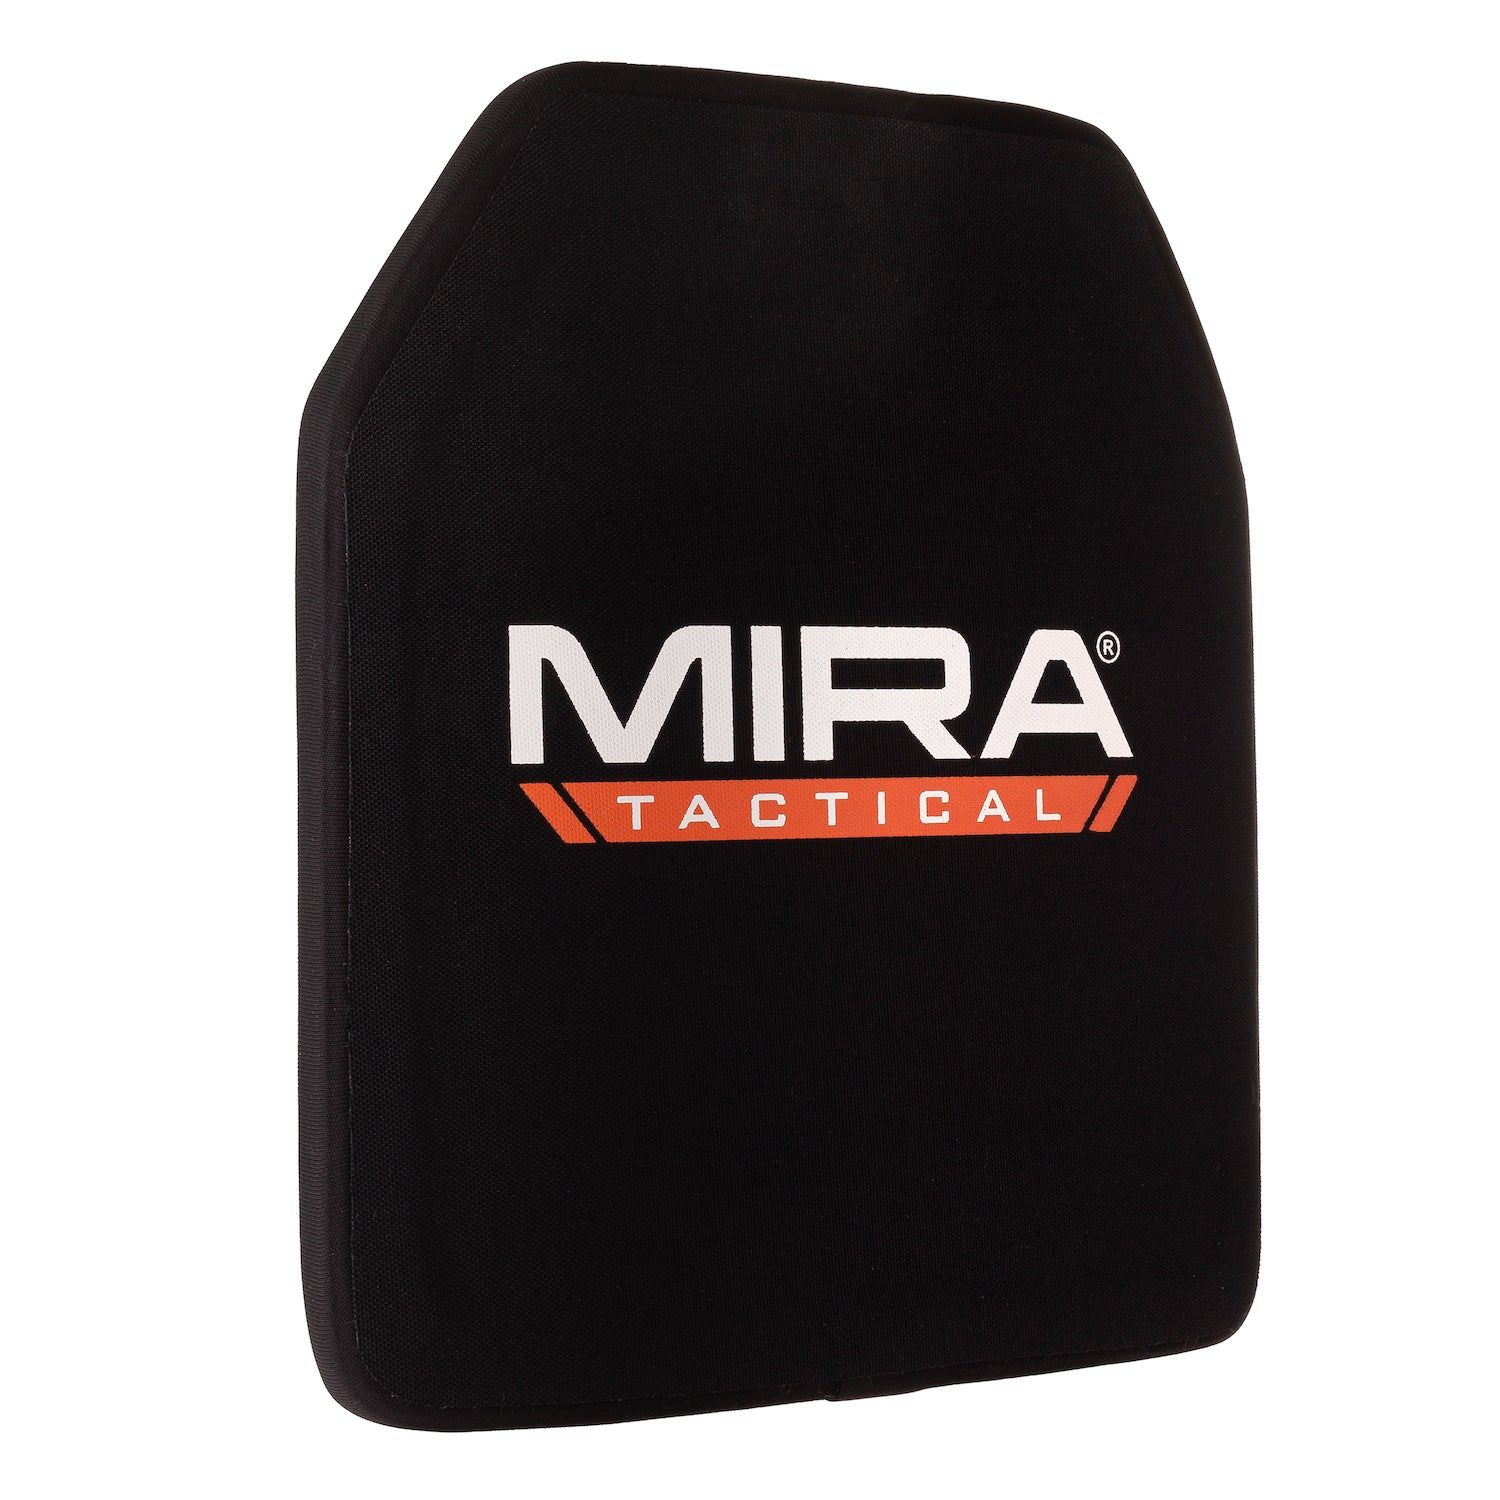 45 degree turn of MIRA Tactical level 4 body armor plate